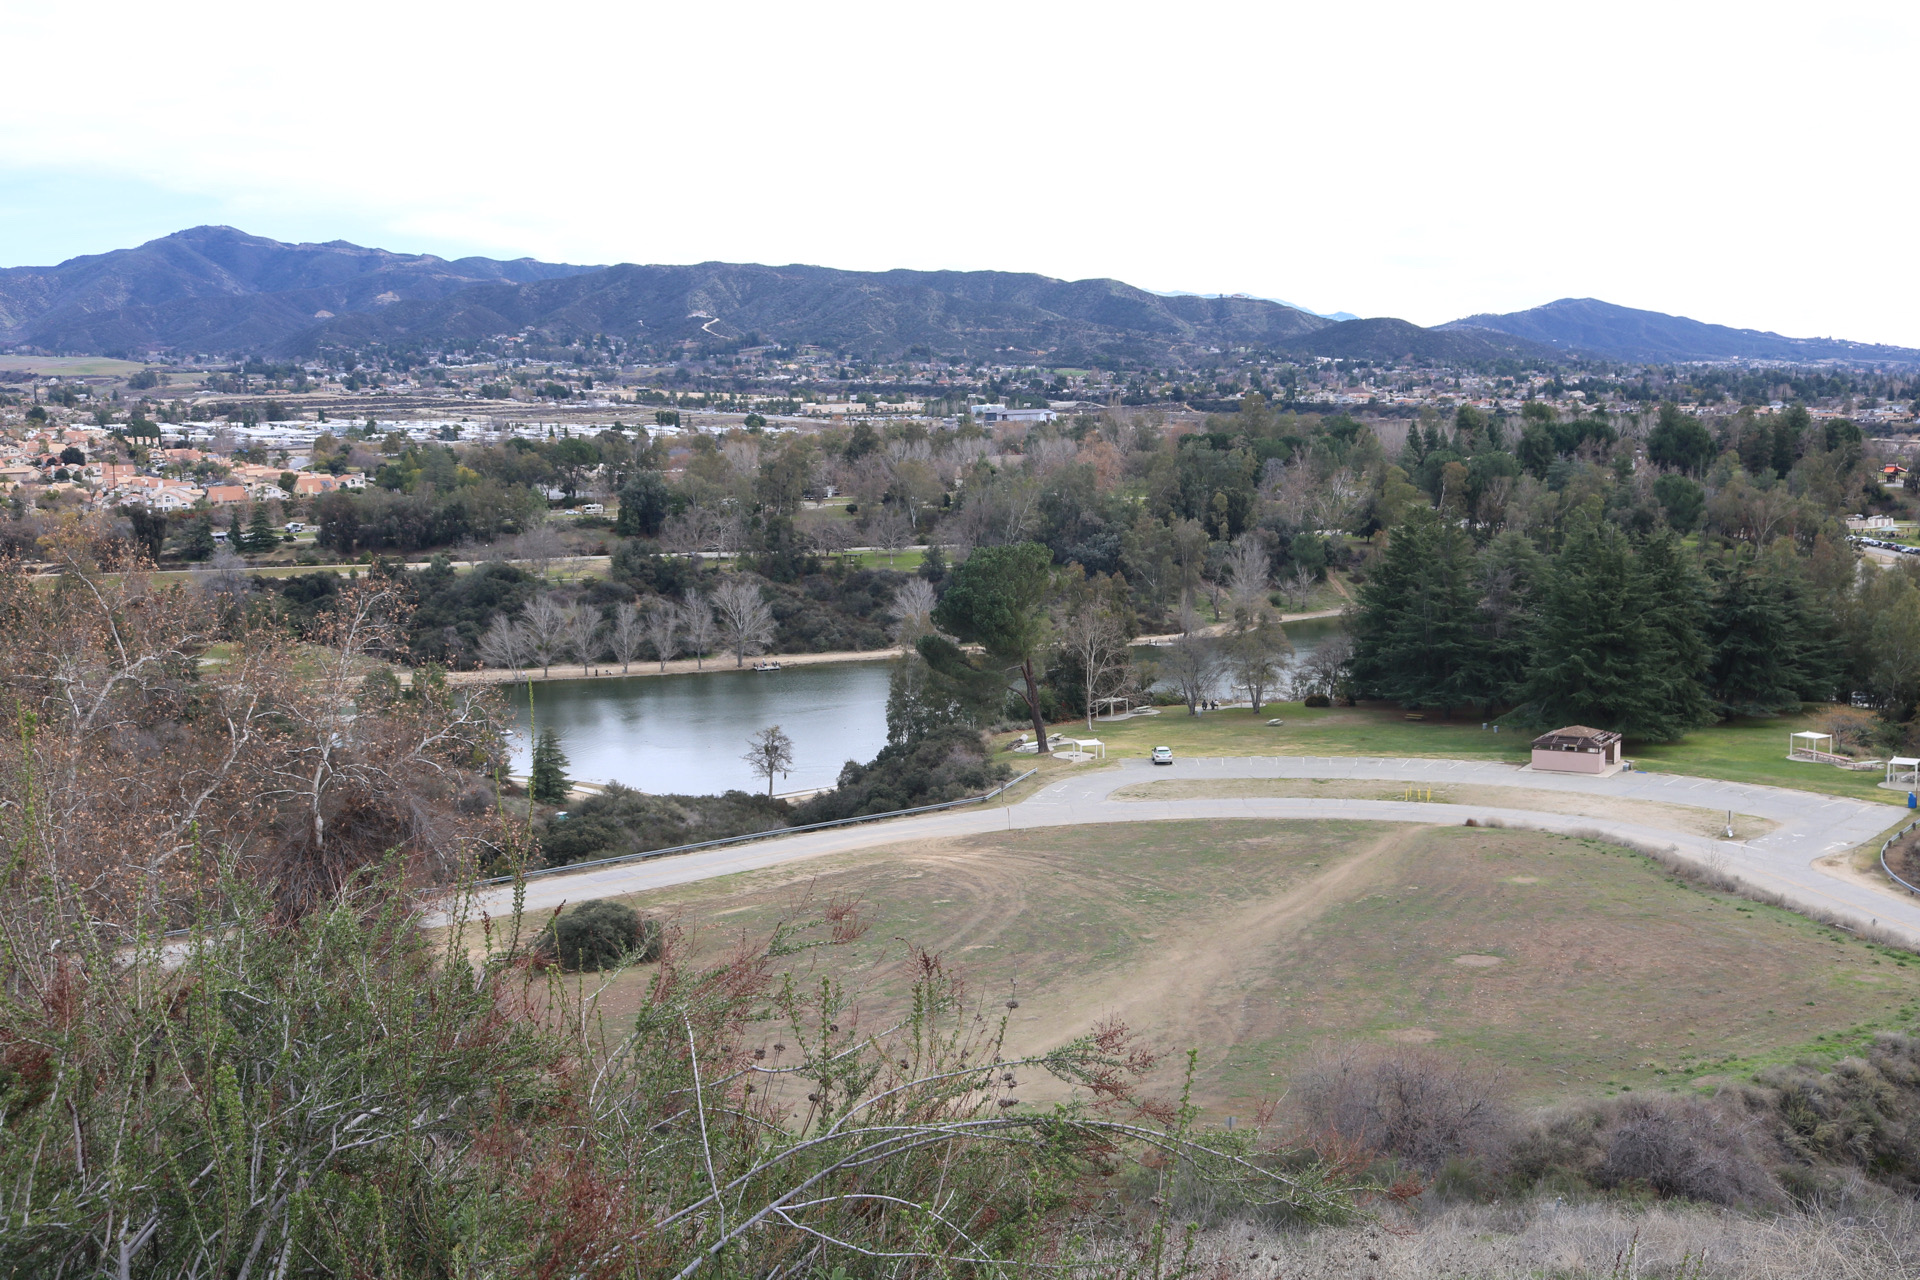 Yucaipa Landscape from the top of a hill over looking lake